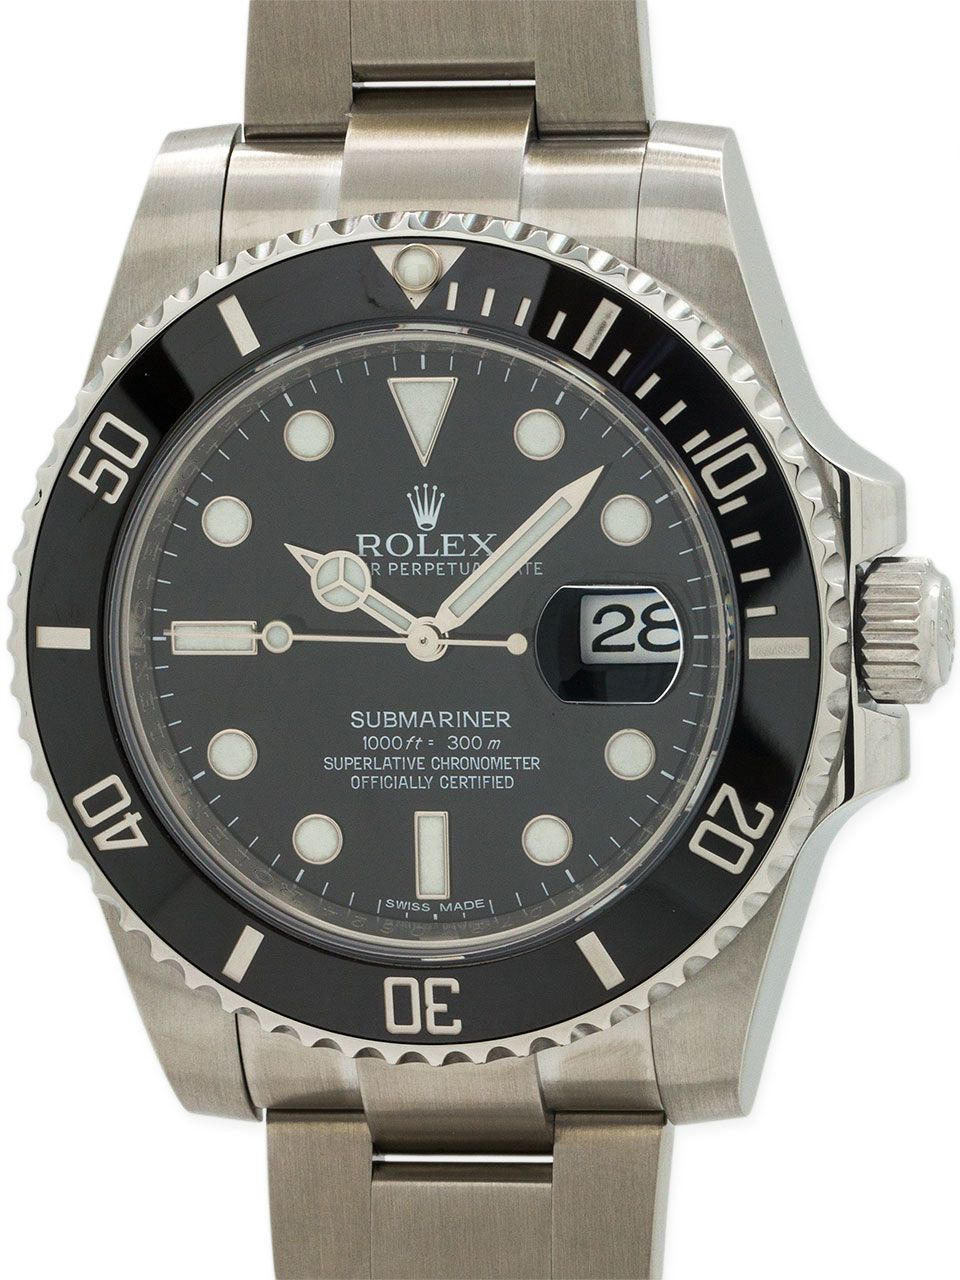 7fad93b083a Rolex Submariner ref 116610 Ceramic circa 2010+ - Rolex Submariner stainless  steel ref  116610 preowned minty condition with random serial  .